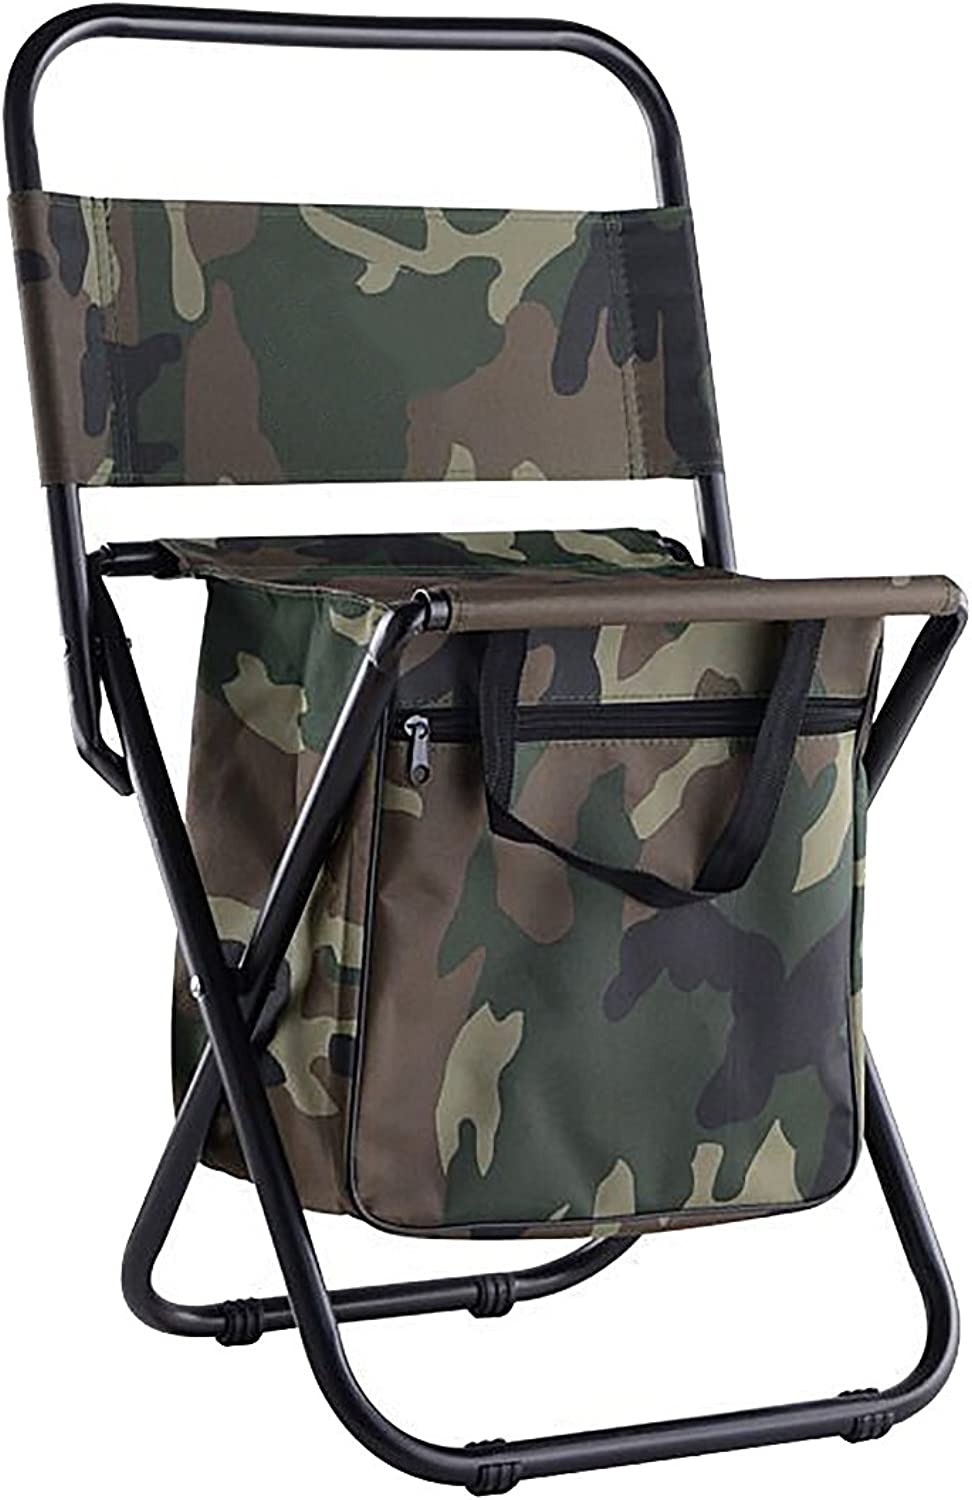 Folding Camping Chair with Storage Pocket for Hiking, Camping, Fishing, Beach, Outdoor